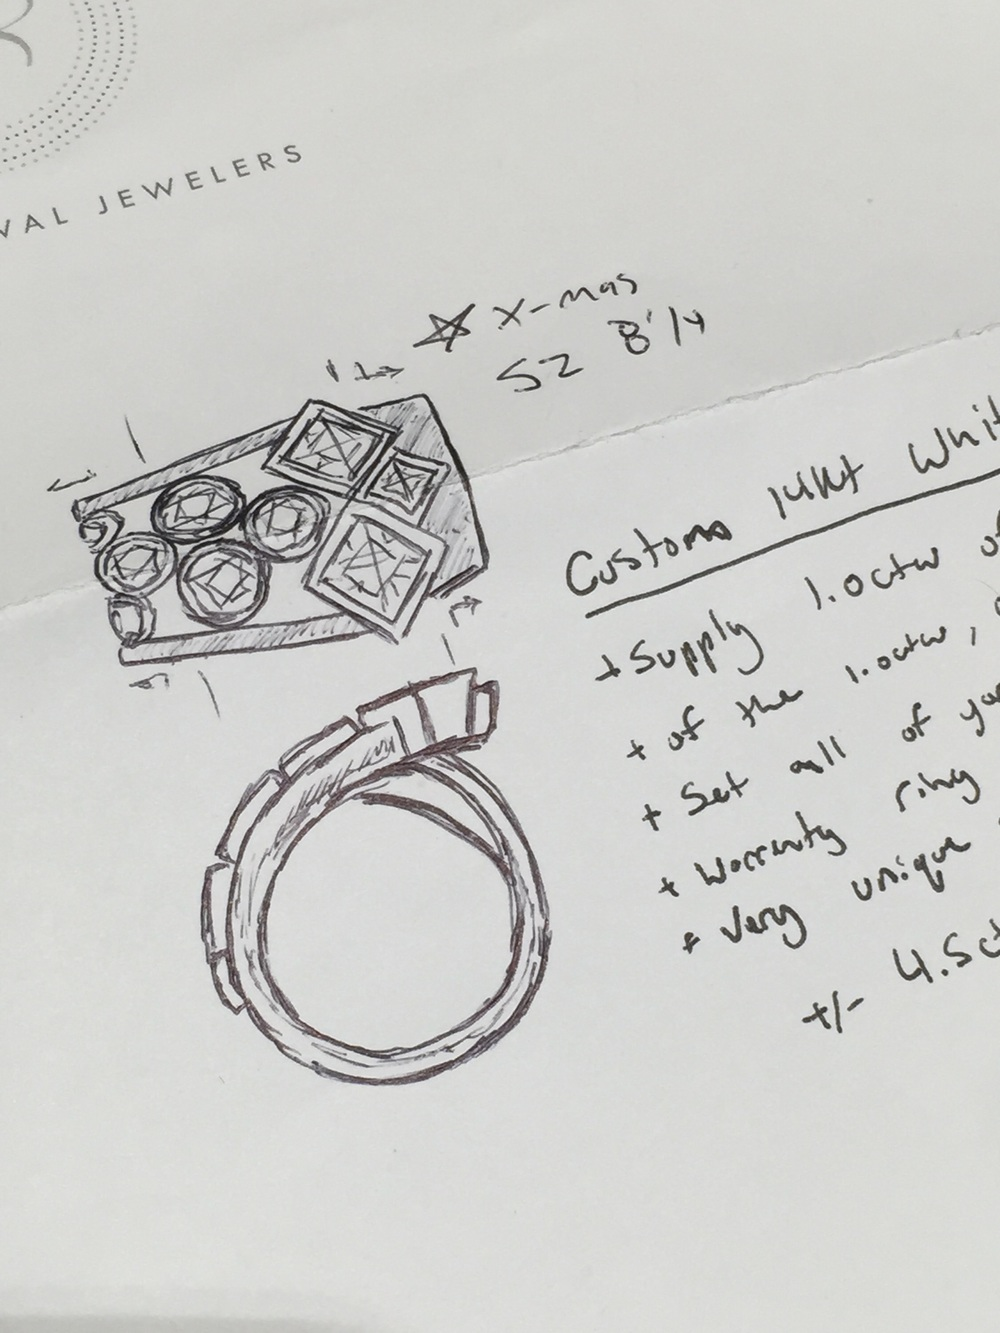 sketch-unique-custom-redesign-old-jewelry-new-piece-reuse-custom-rings-jewelry-design-your-own-jewelry-raft-revival-jewelry-store-grand-rapids